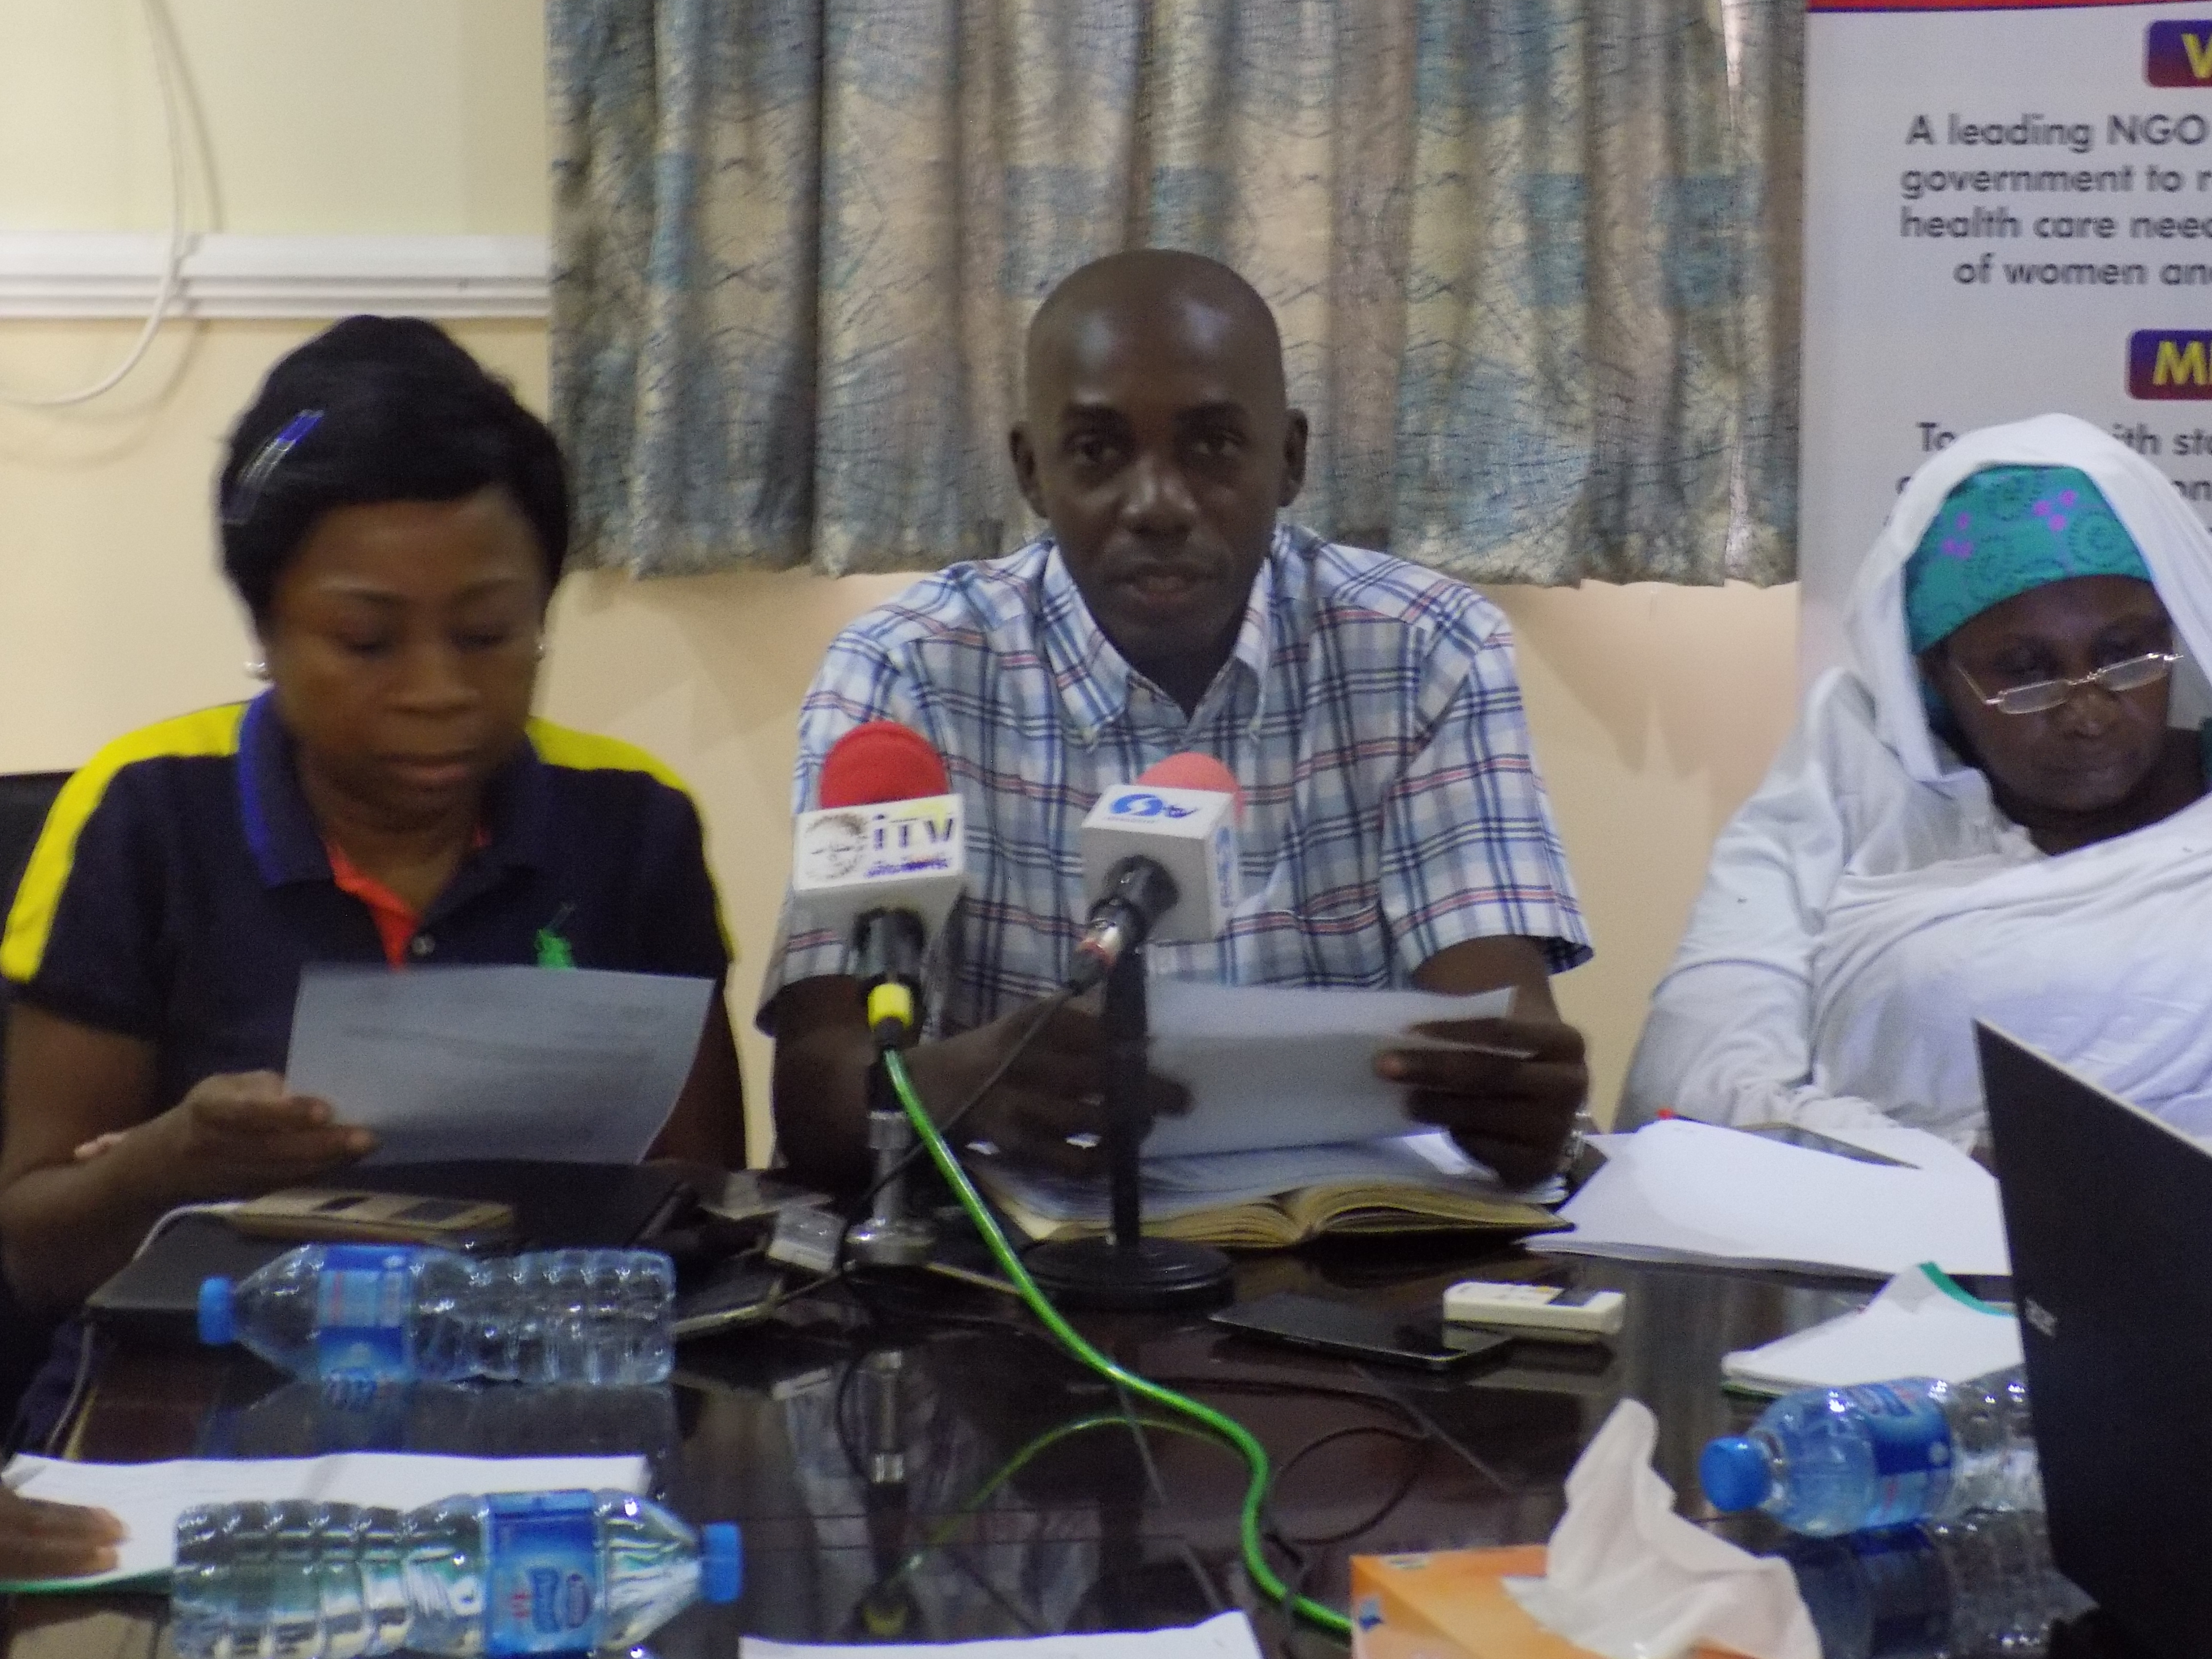 #UHCDay: AHBN, CHR call for increase budget to health sector